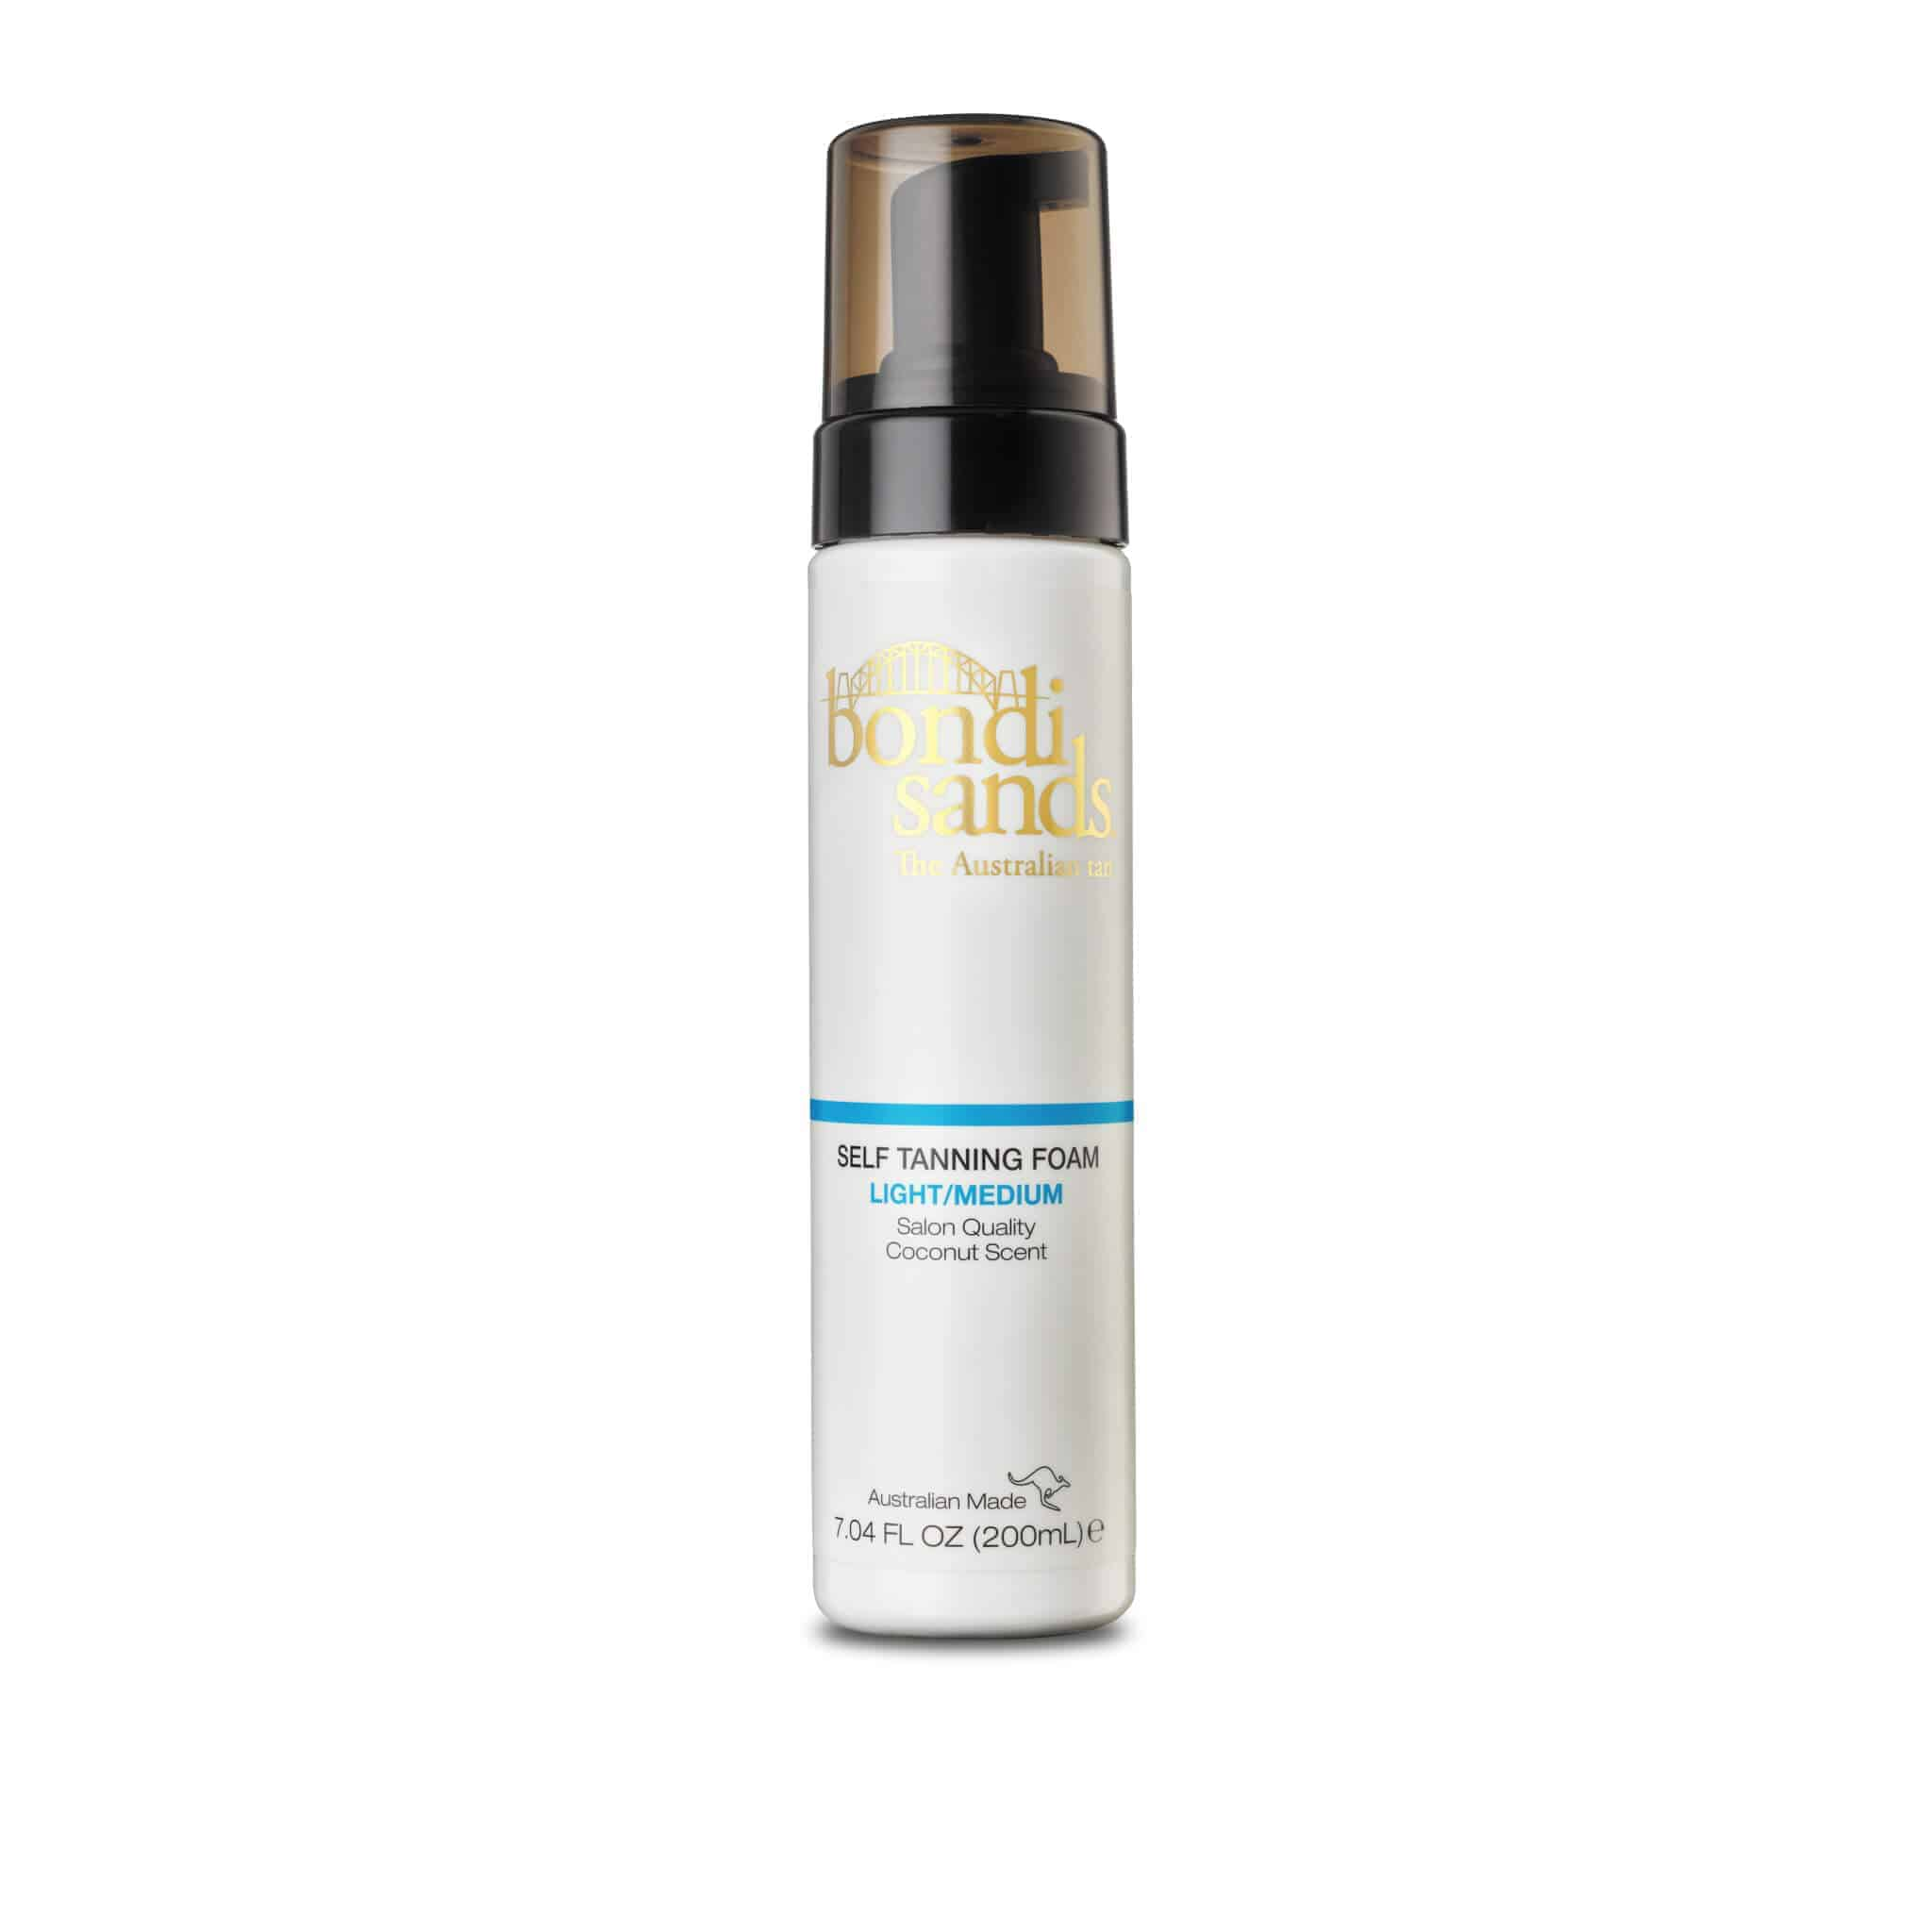 Bondi Sands Self Tanning Foam Light Medium